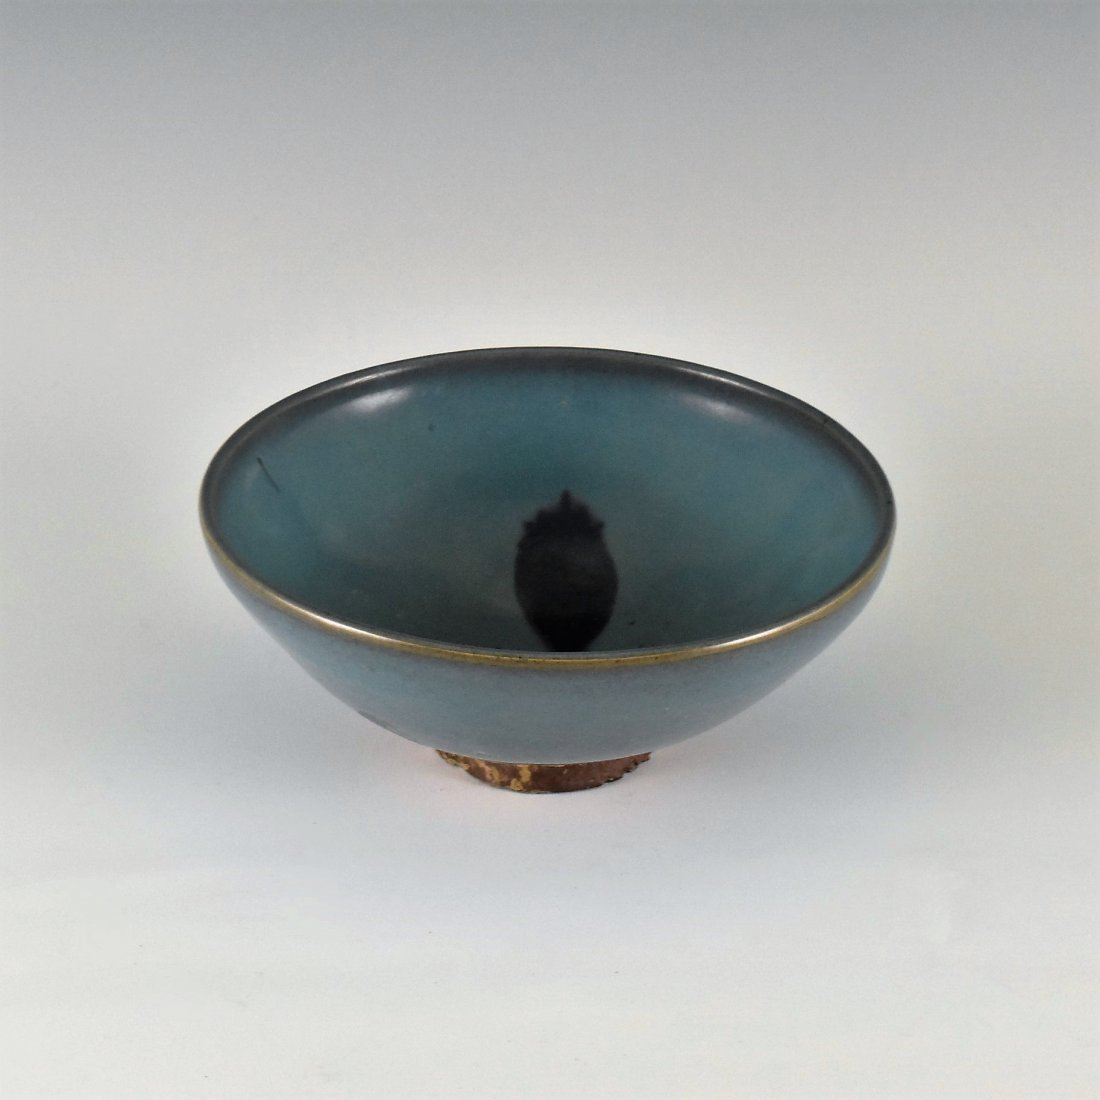 A TURQUOISE GLAZED JUN WARE TEA BOWL